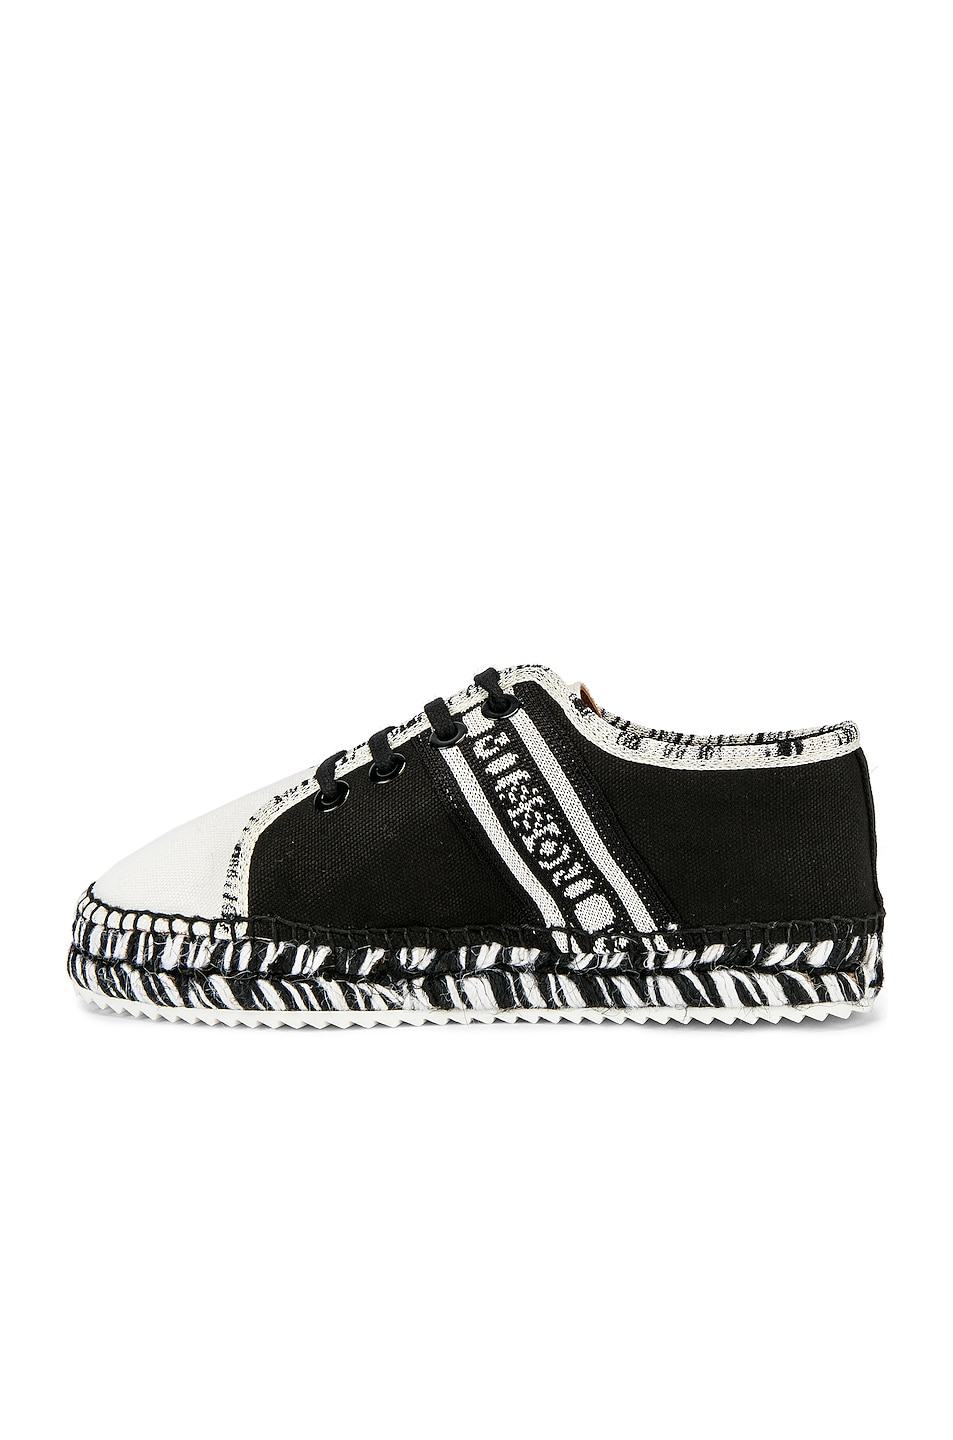 Image 5 of Castaner x MISSONI Kerri Sneaker in Black & White